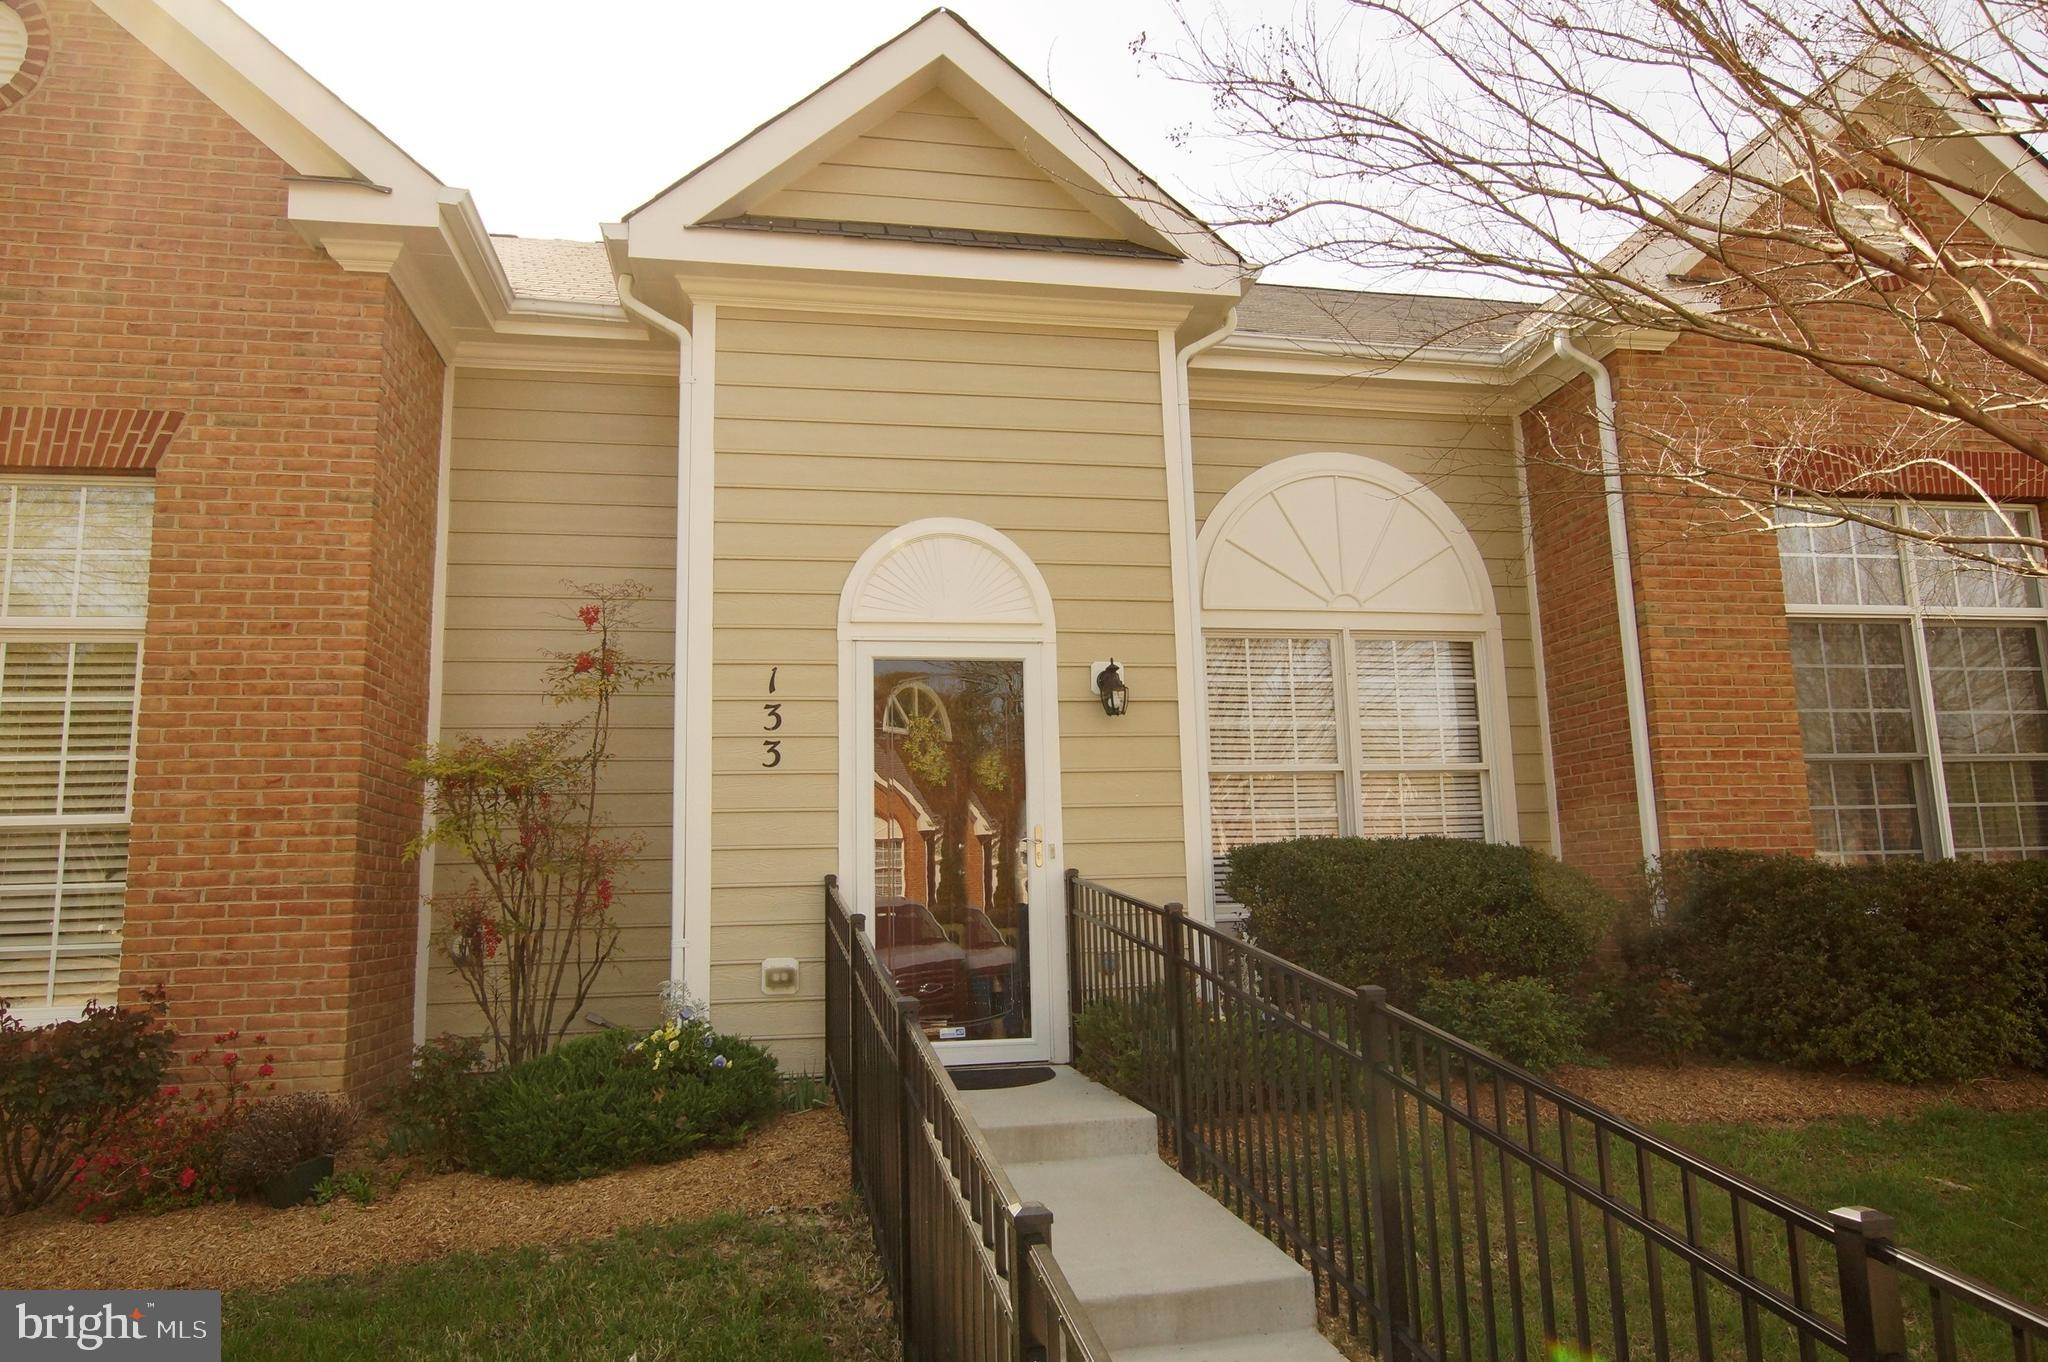 Move in ready 2 bedroom, 2 bathroom house, Hardwood Floors, Large Kitchen, Separate Dining Room, and Screened in Porch; located in La Plata in Washington Square 55+ community.  Monthly HOA fee of $143 which includes lawn, gutter cleaning, snow removal, exterior maintenance.  Close to Van Go Stops, Shopping, and Restaurants.  Hospital less than 5 miles away